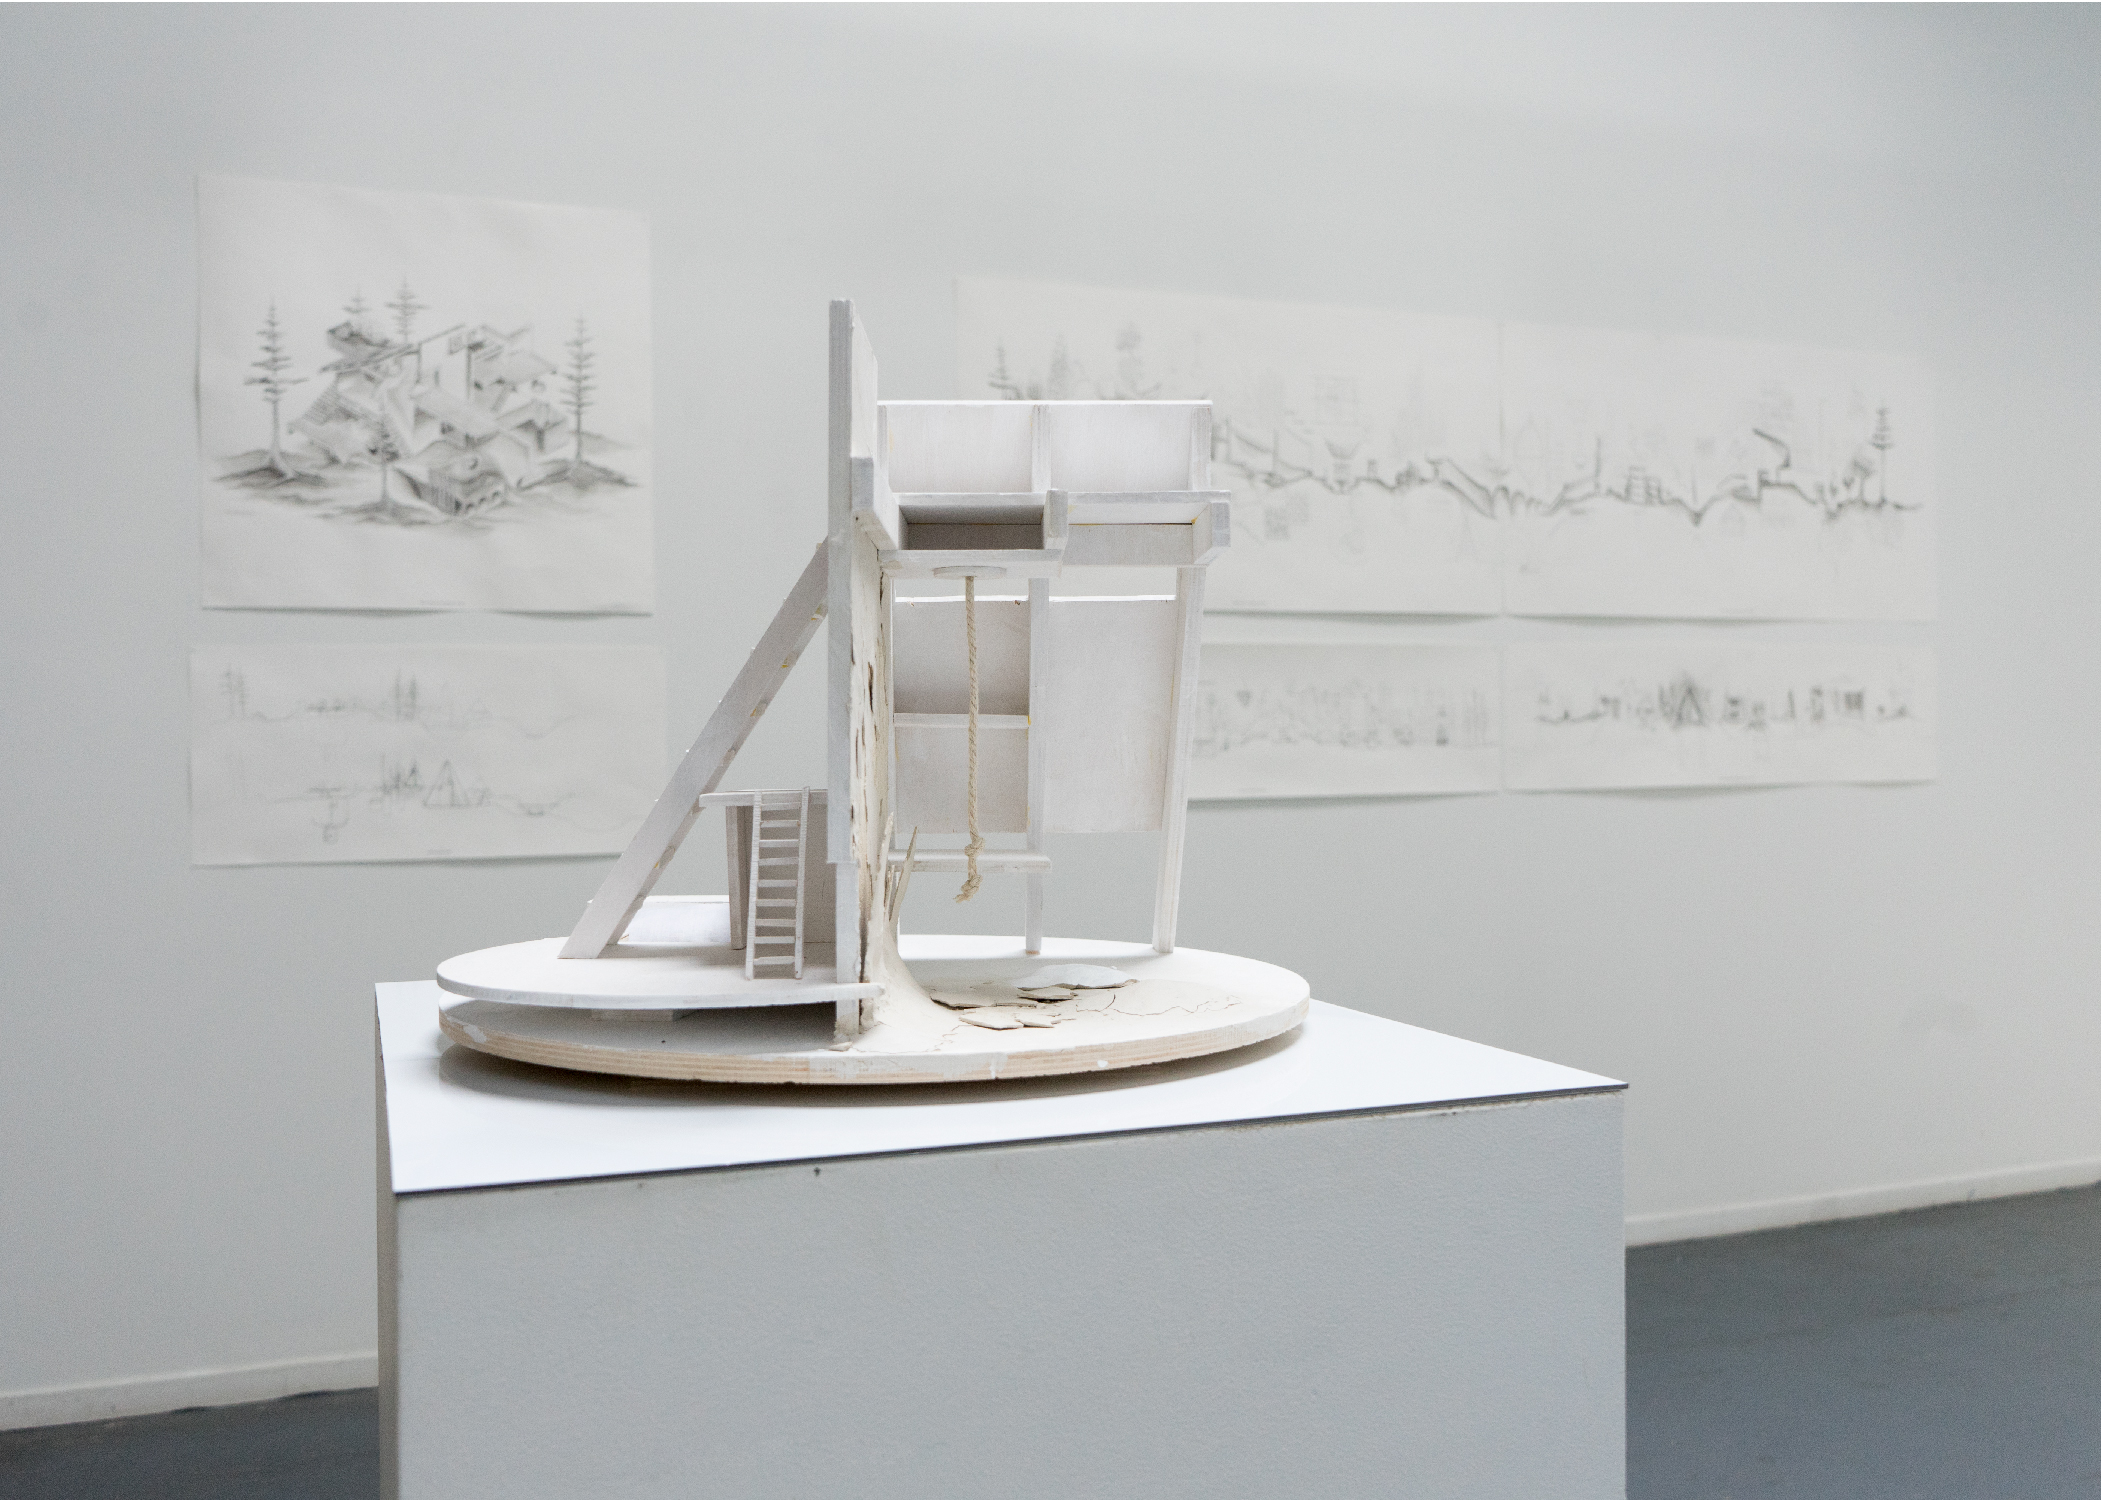 Pera Hardy,  The Place You Thought You Knew,      Model and Drawings